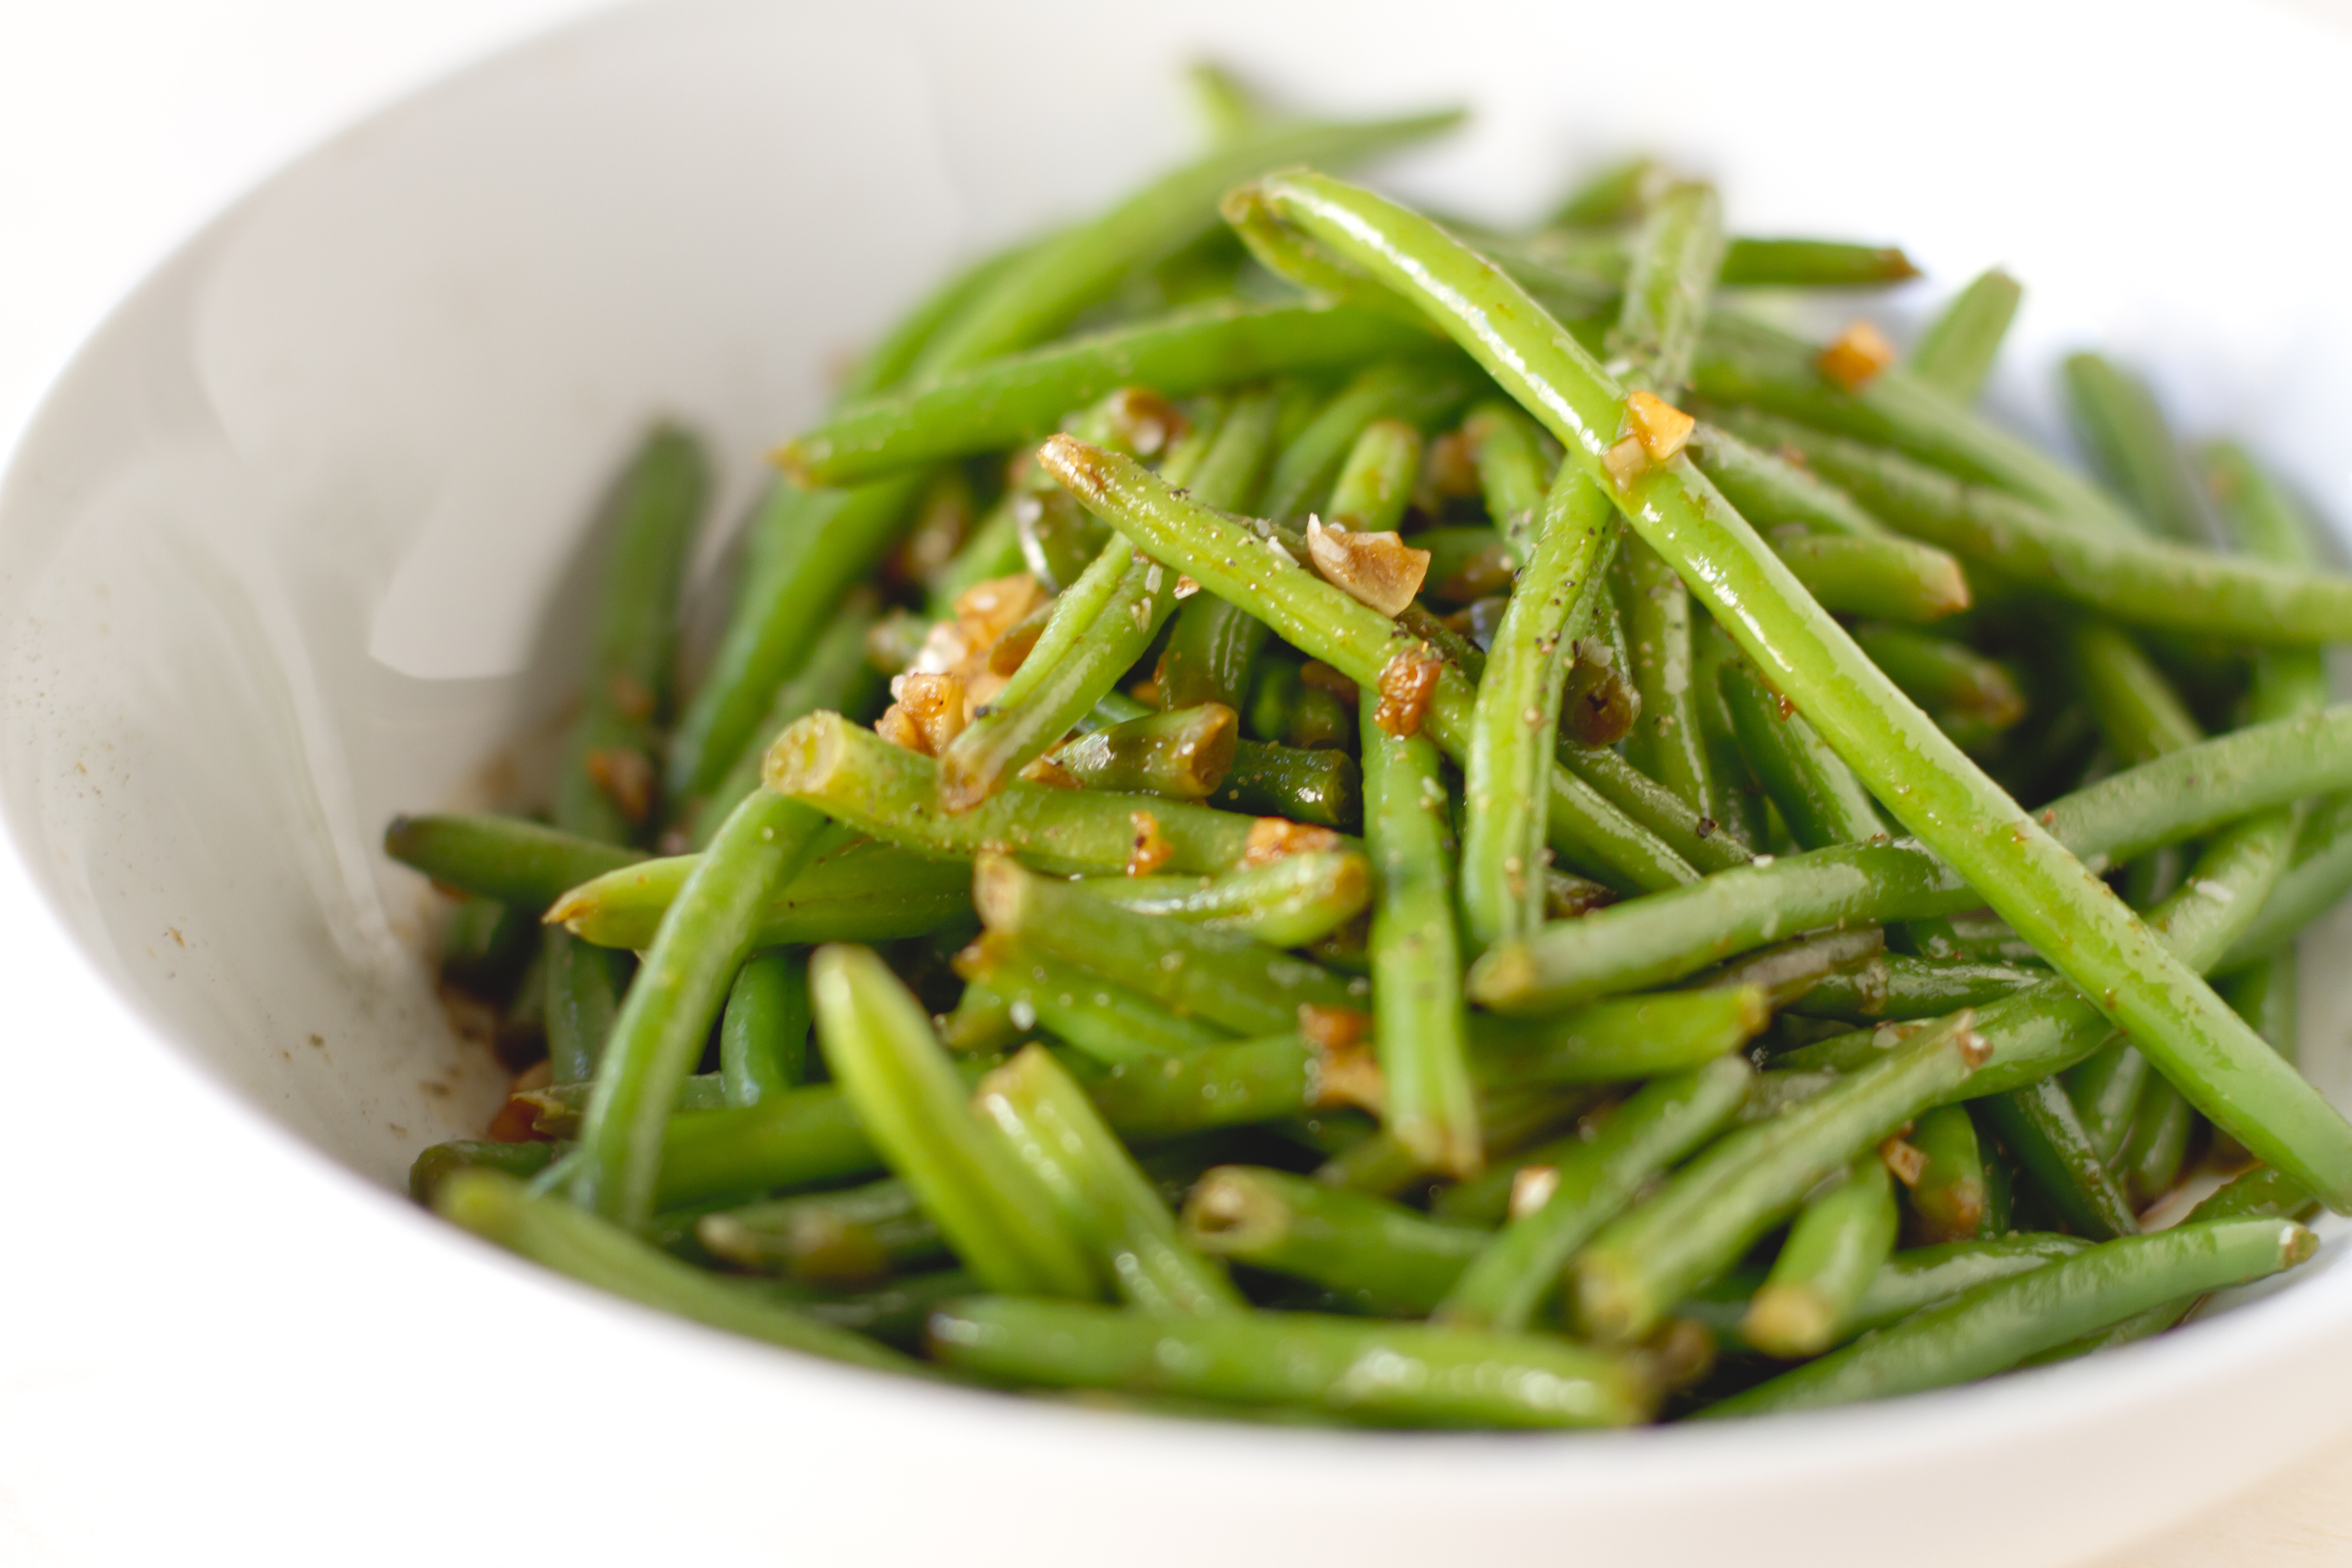 Swell 6 Frozen Green Bean Recipes Mom Life Caraccident5 Cool Chair Designs And Ideas Caraccident5Info